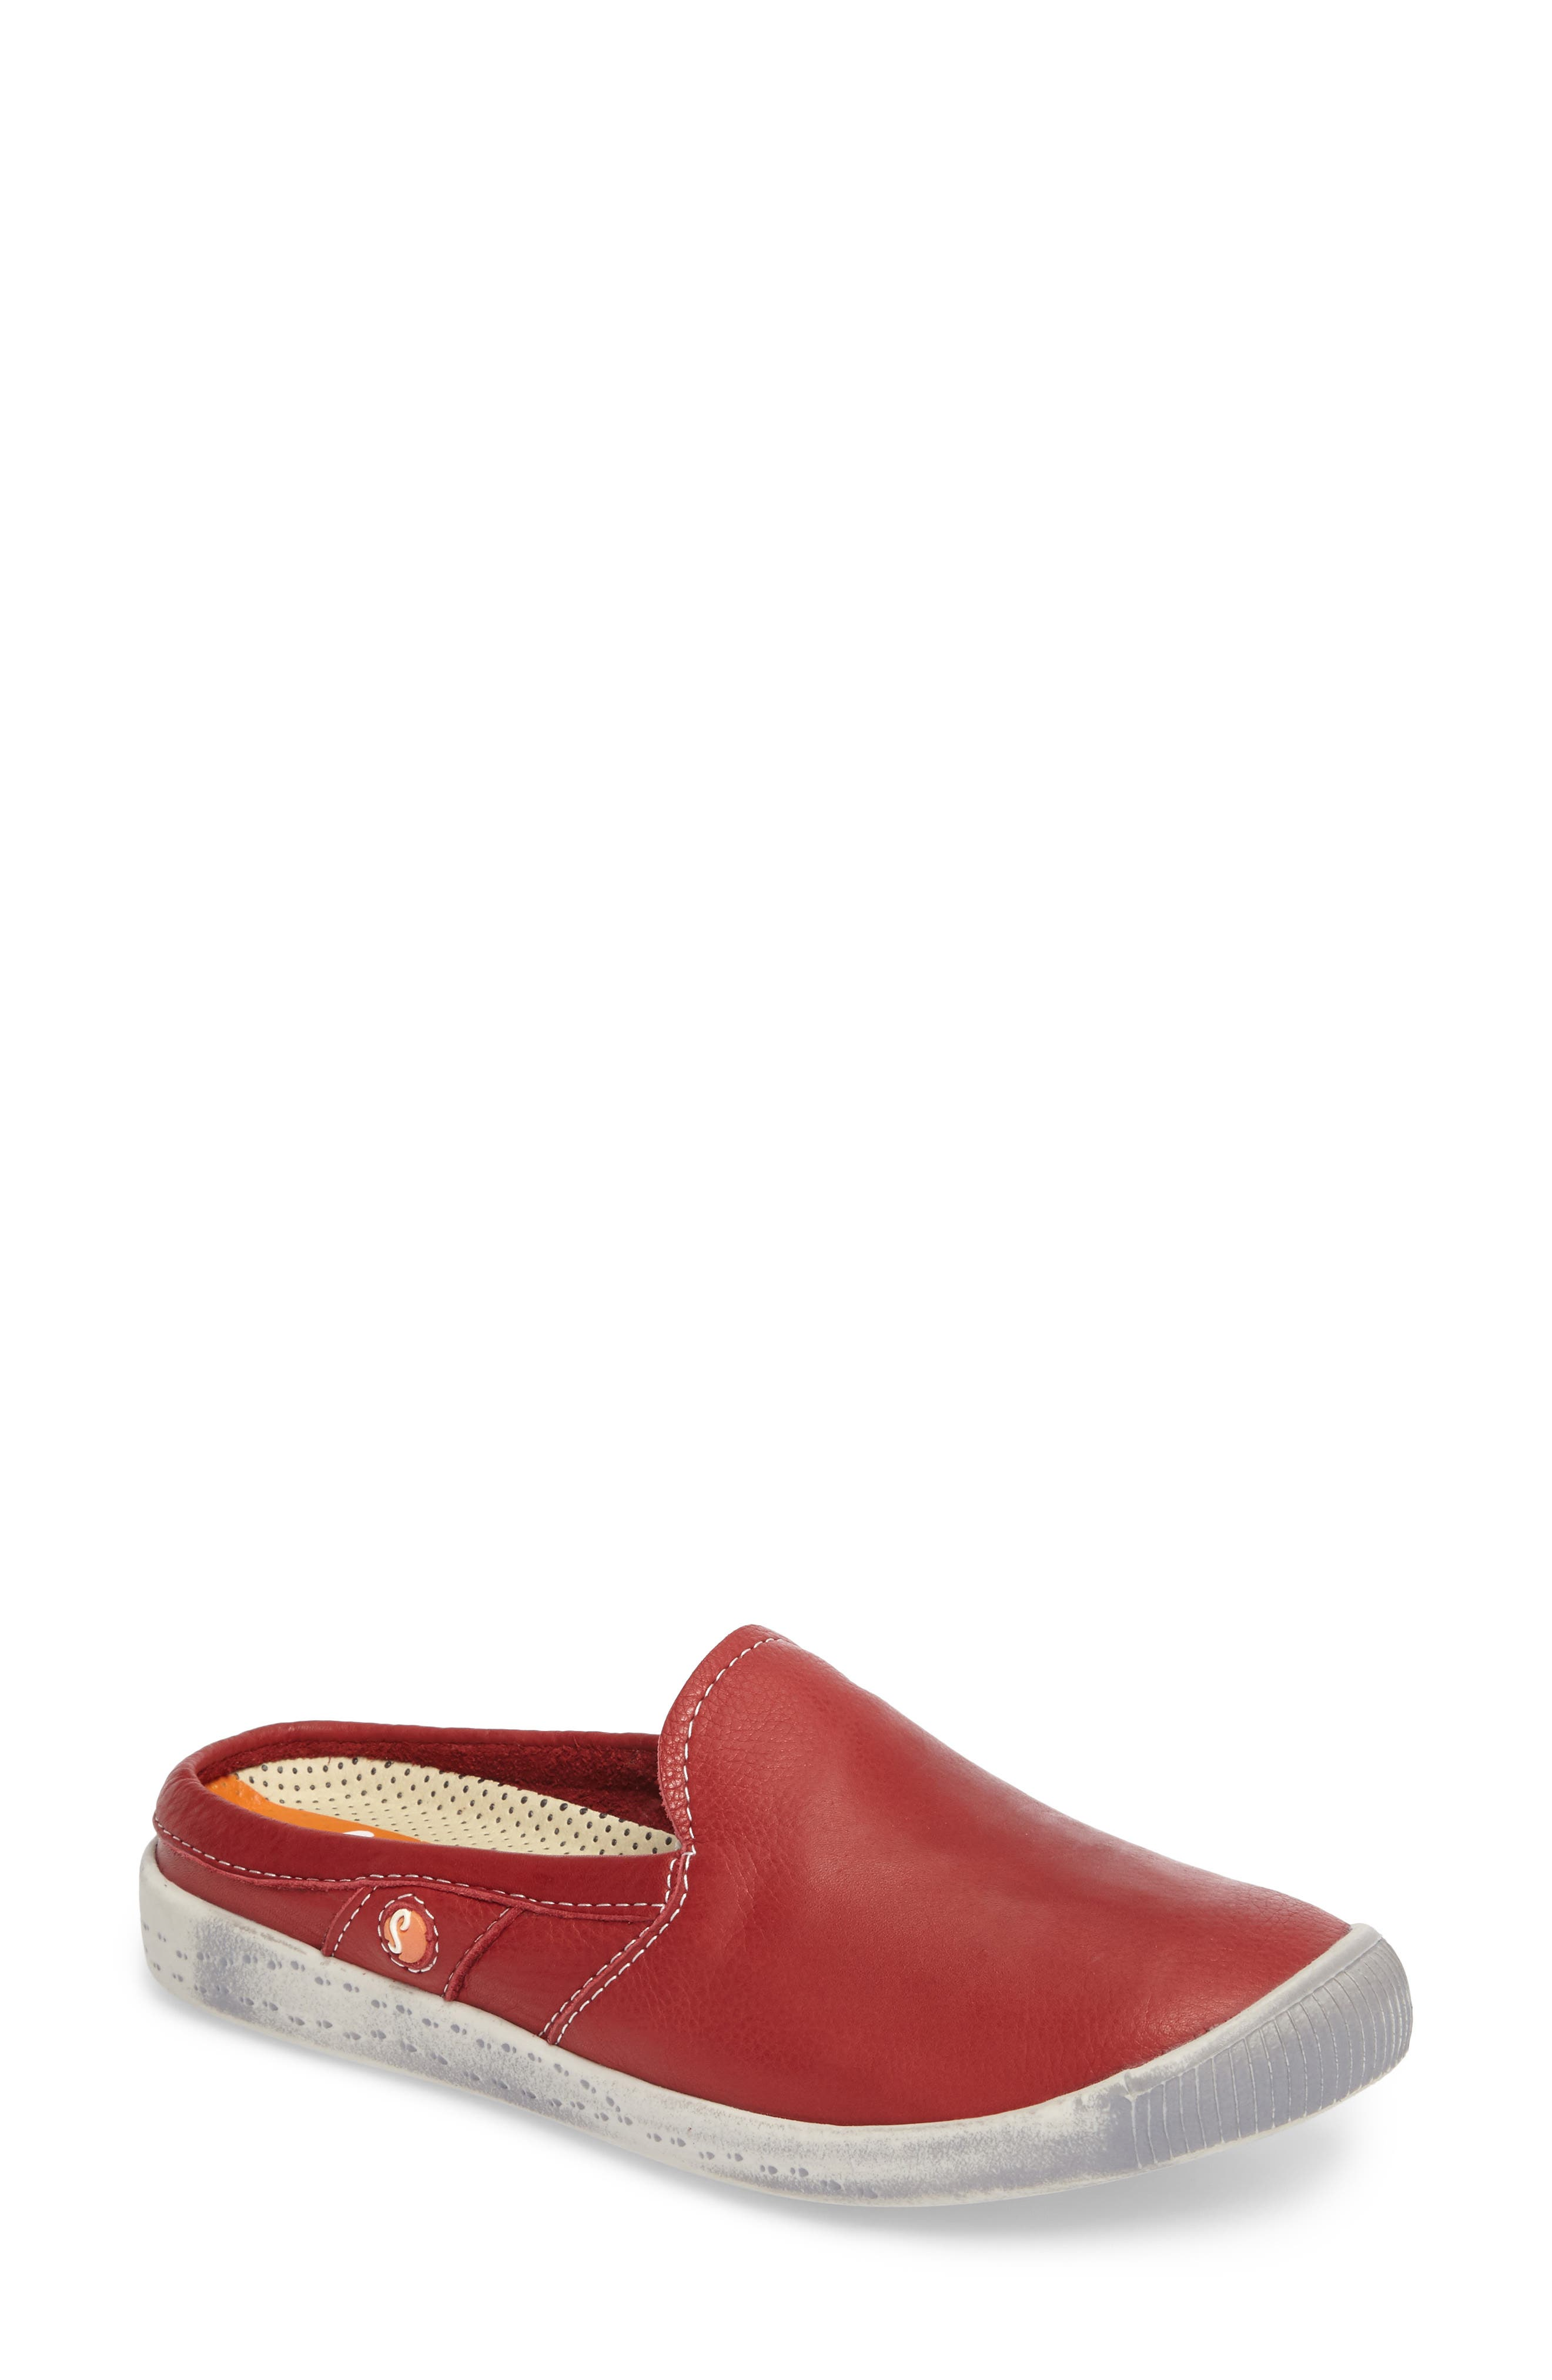 Imo Sneaker Mule,                         Main,                         color, 005 Red Leather